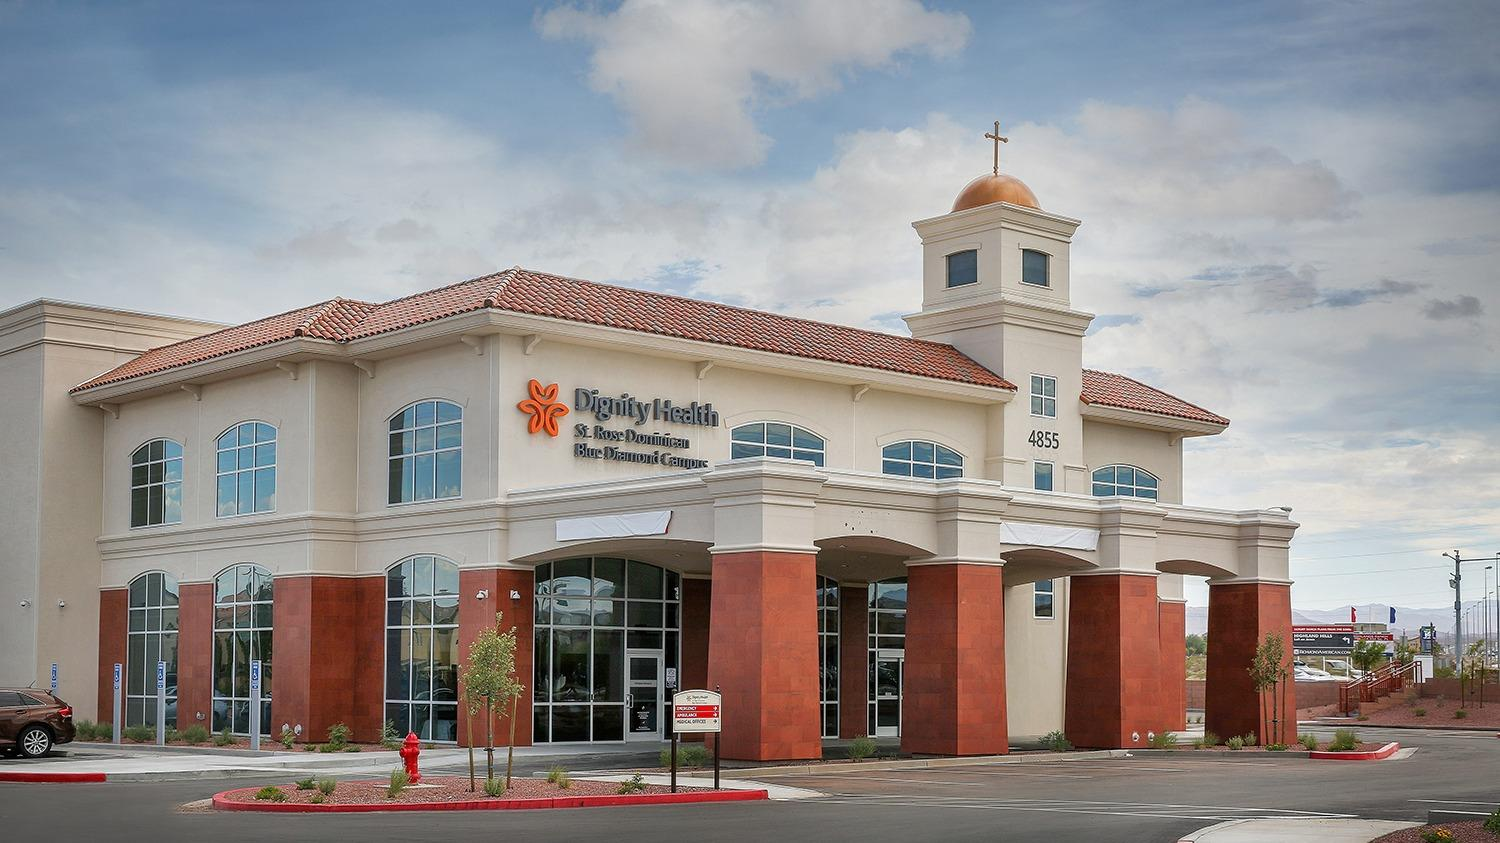 Dignity Health - St. Rose Dominican Hospital, Blue Diamond - Las Vegas, NV